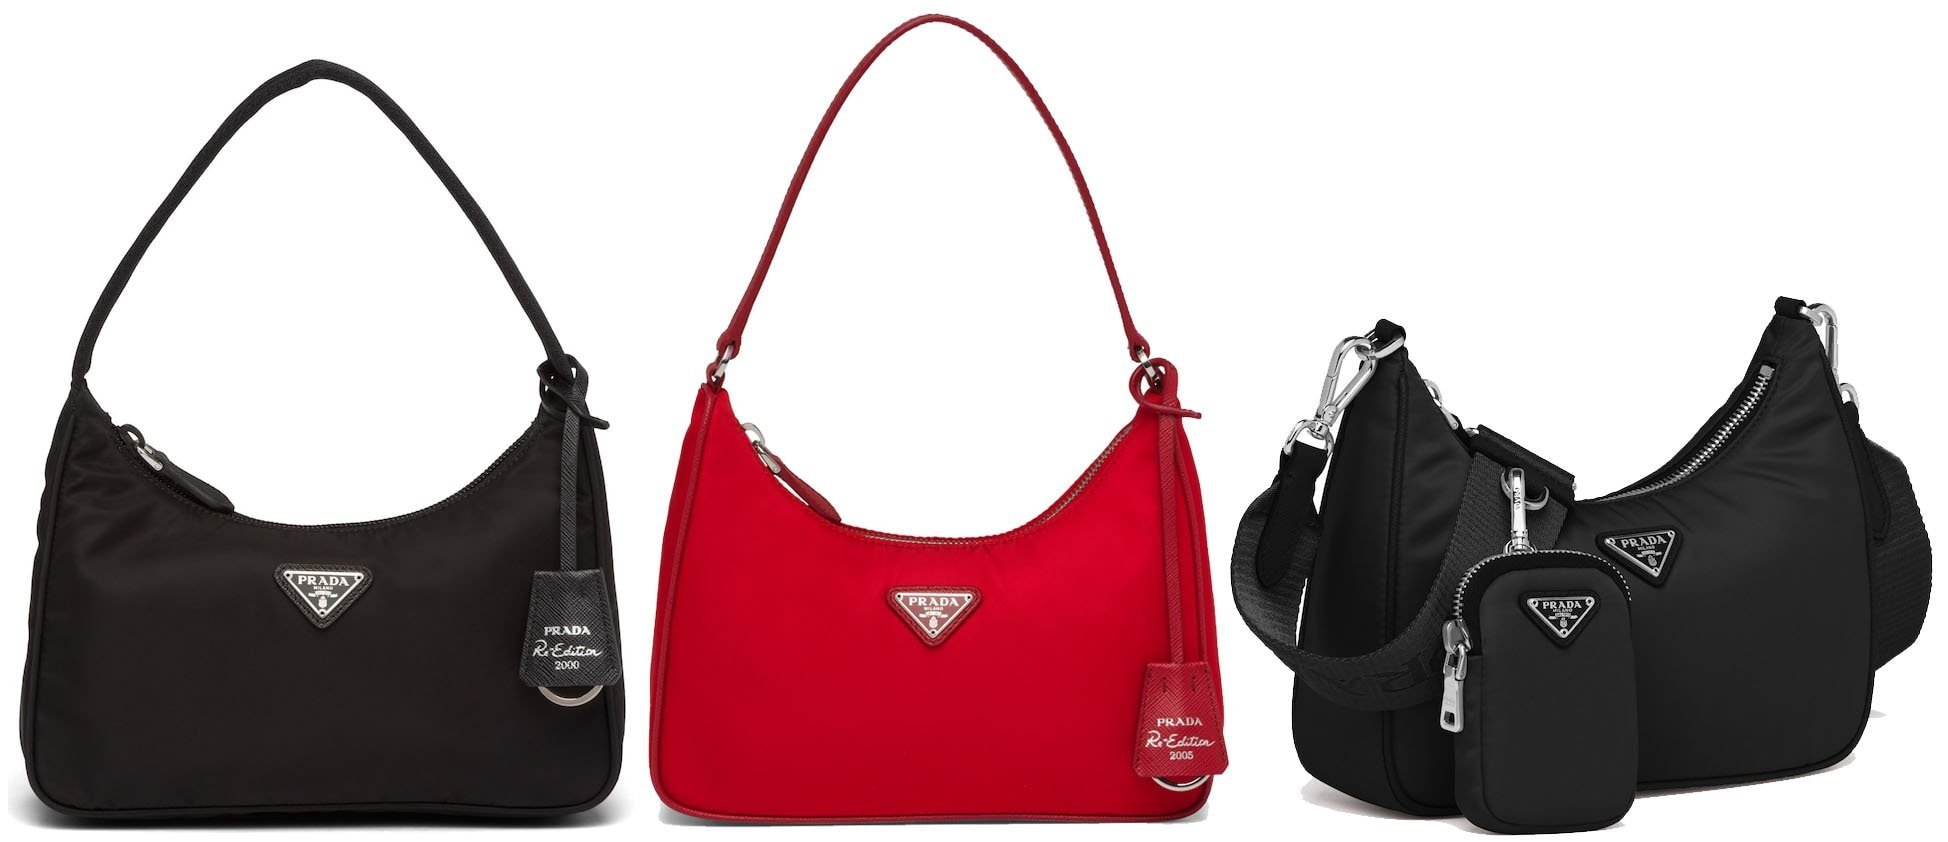 Prada re-released some of its most popular and iconic bags from 2000, 2005, and 2006